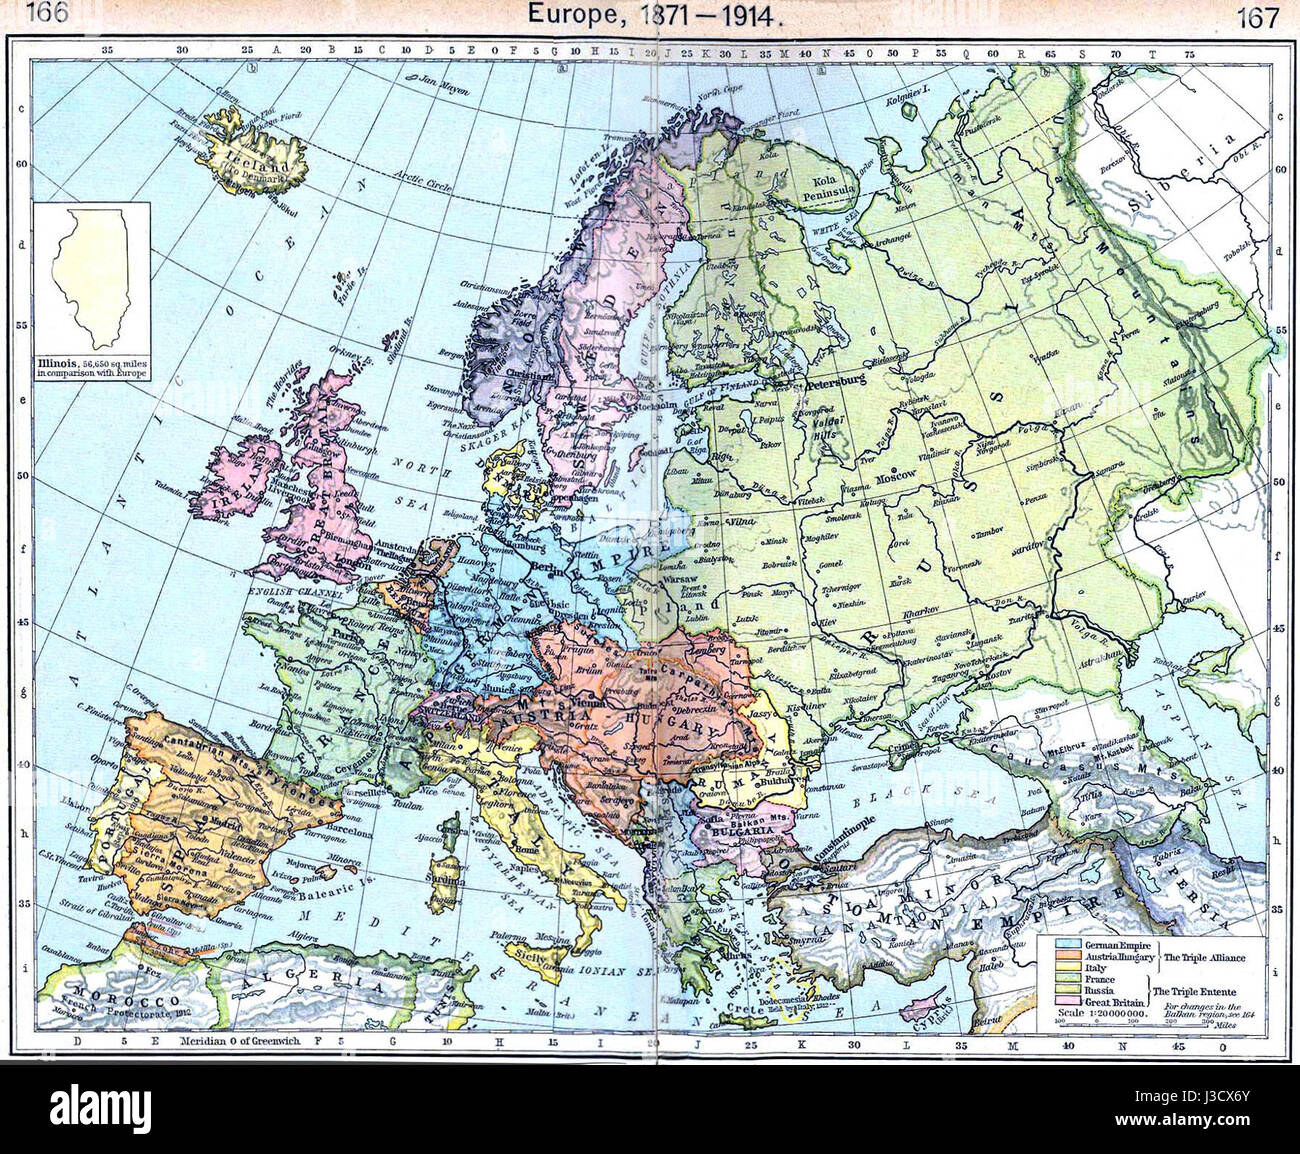 Map Europe 1914 High Resolution Stock Photography And Images Alamy